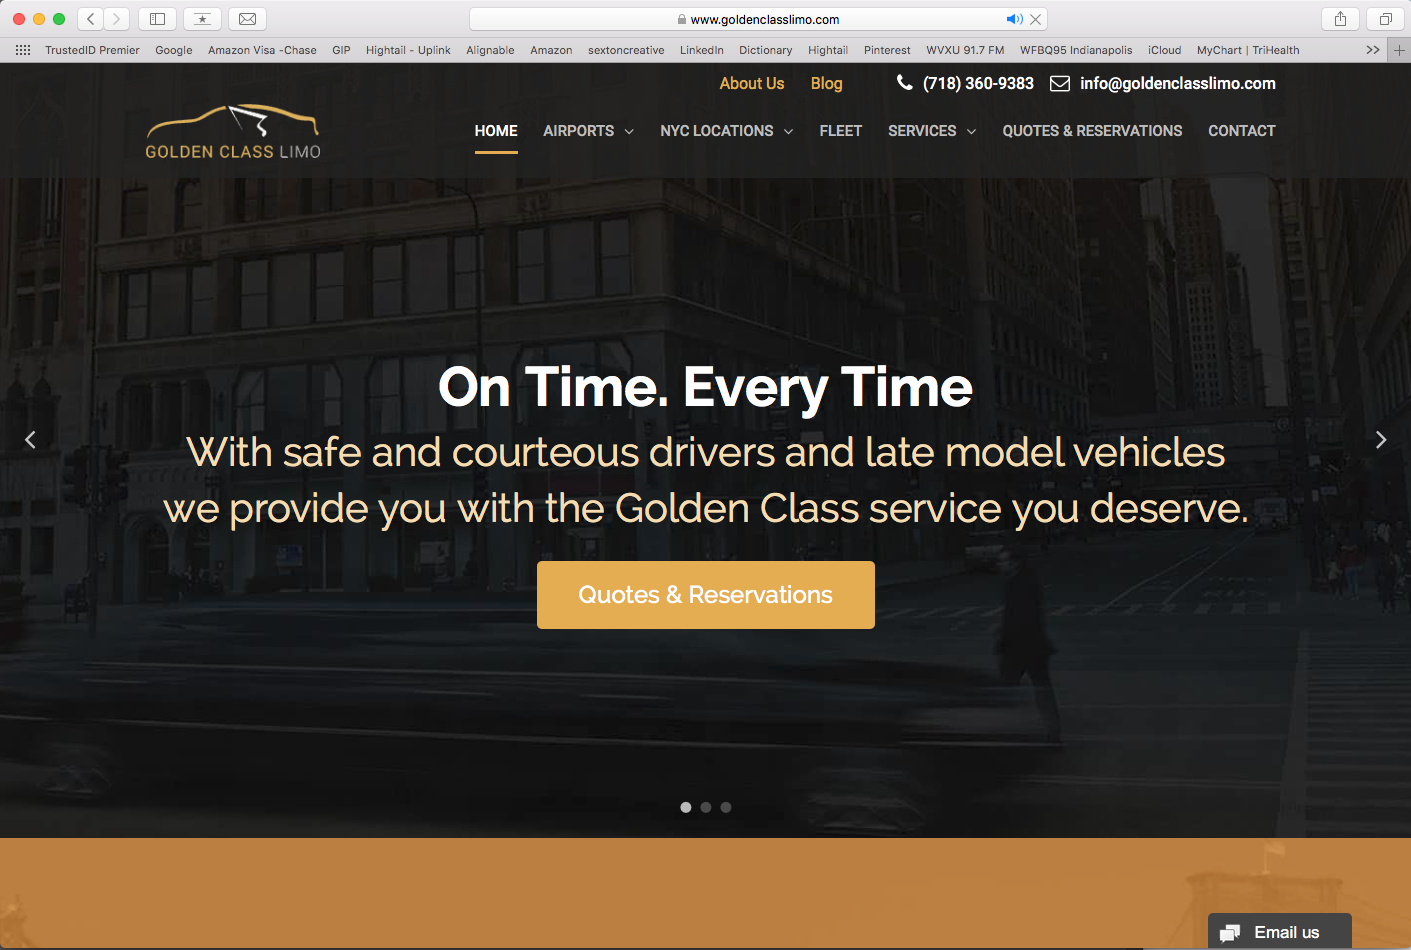 Golden Class Limo Website